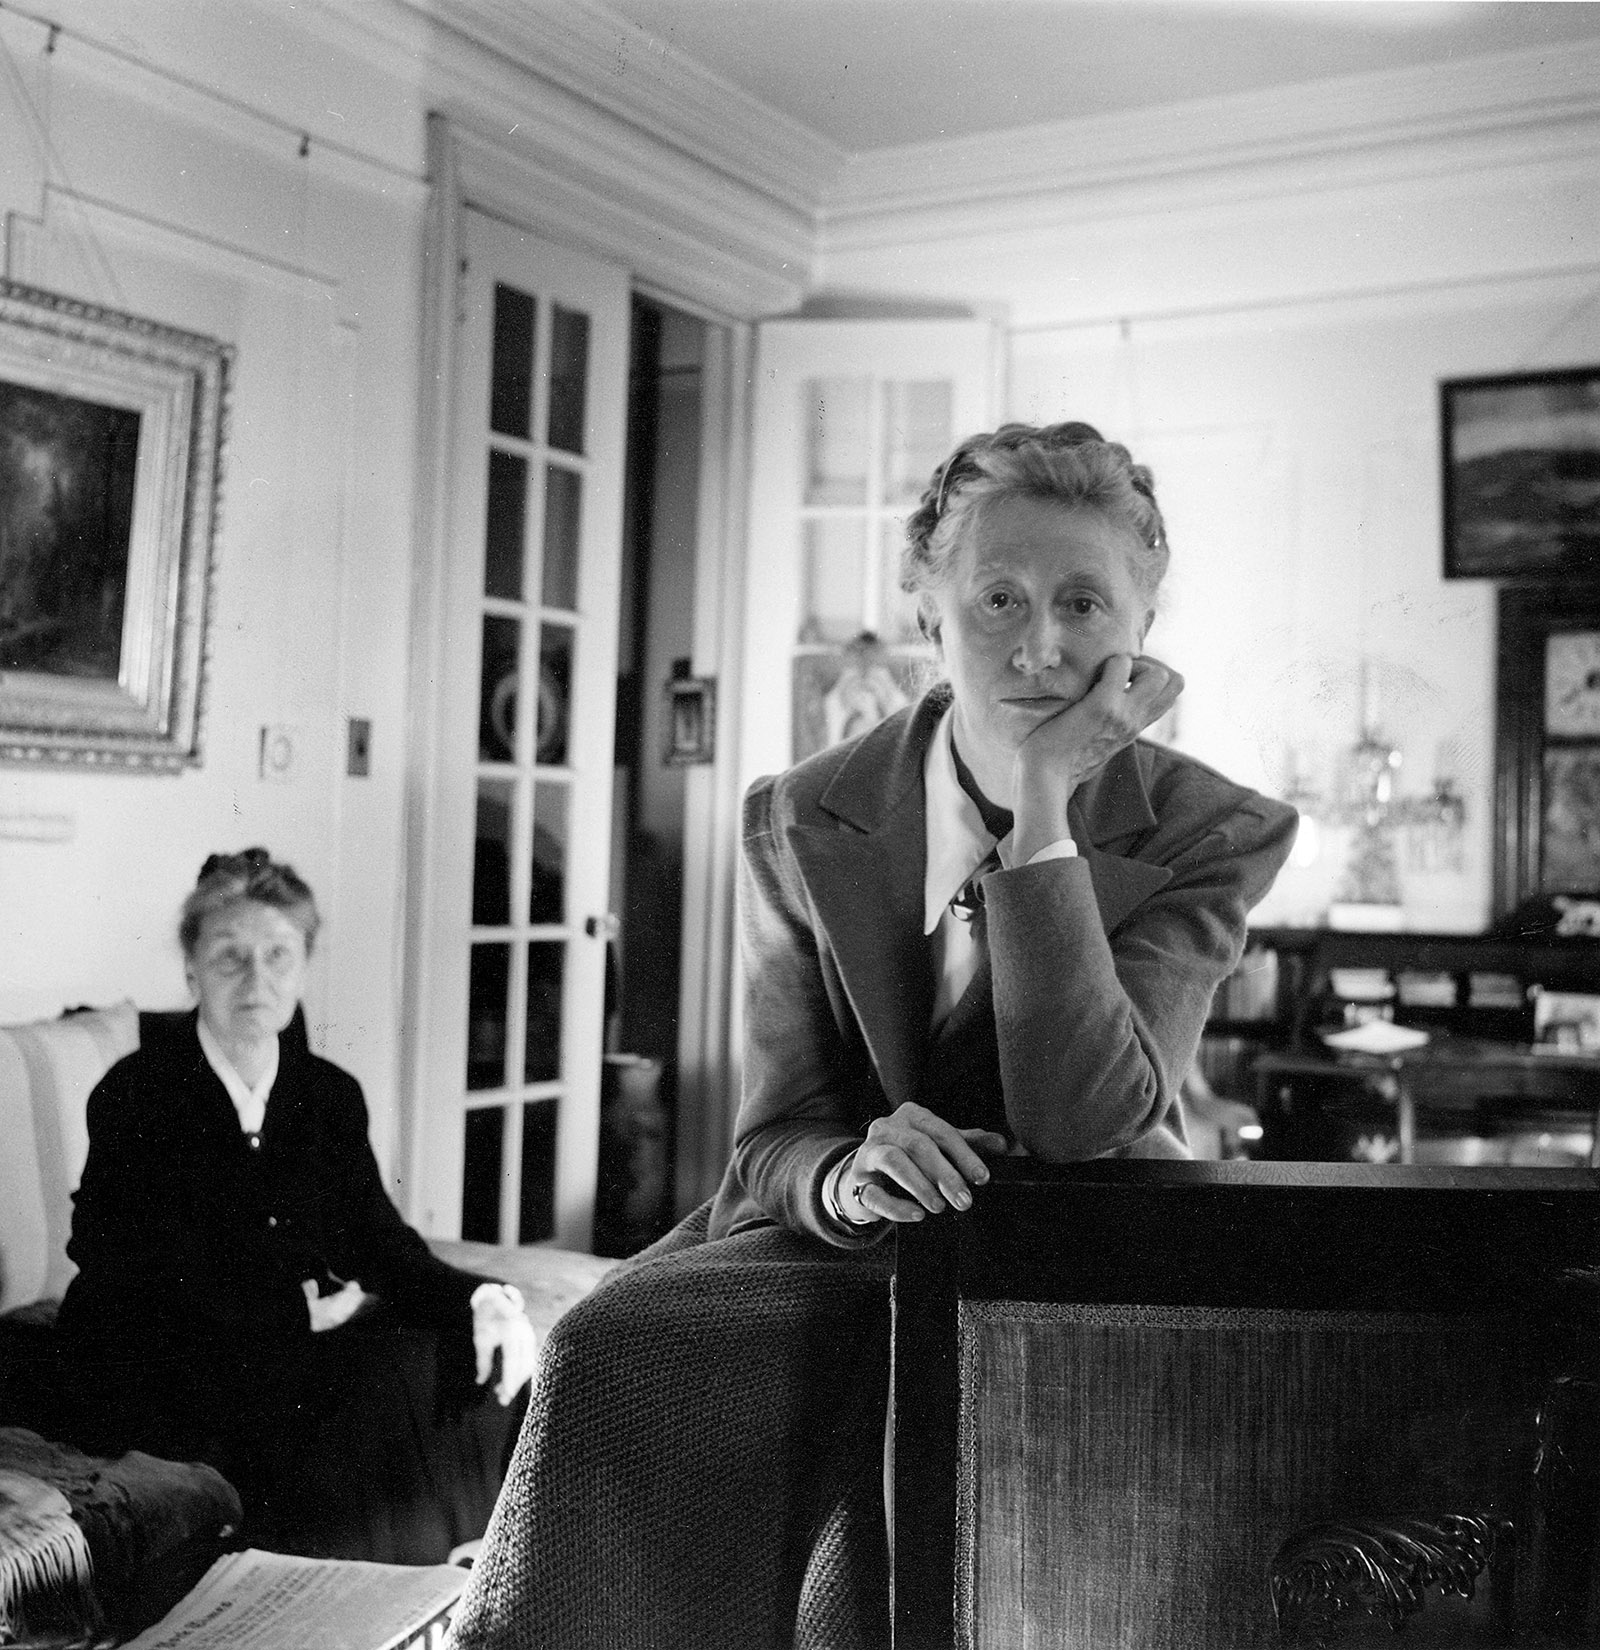 Marianne Moore photo #12111, Marianne Moore image